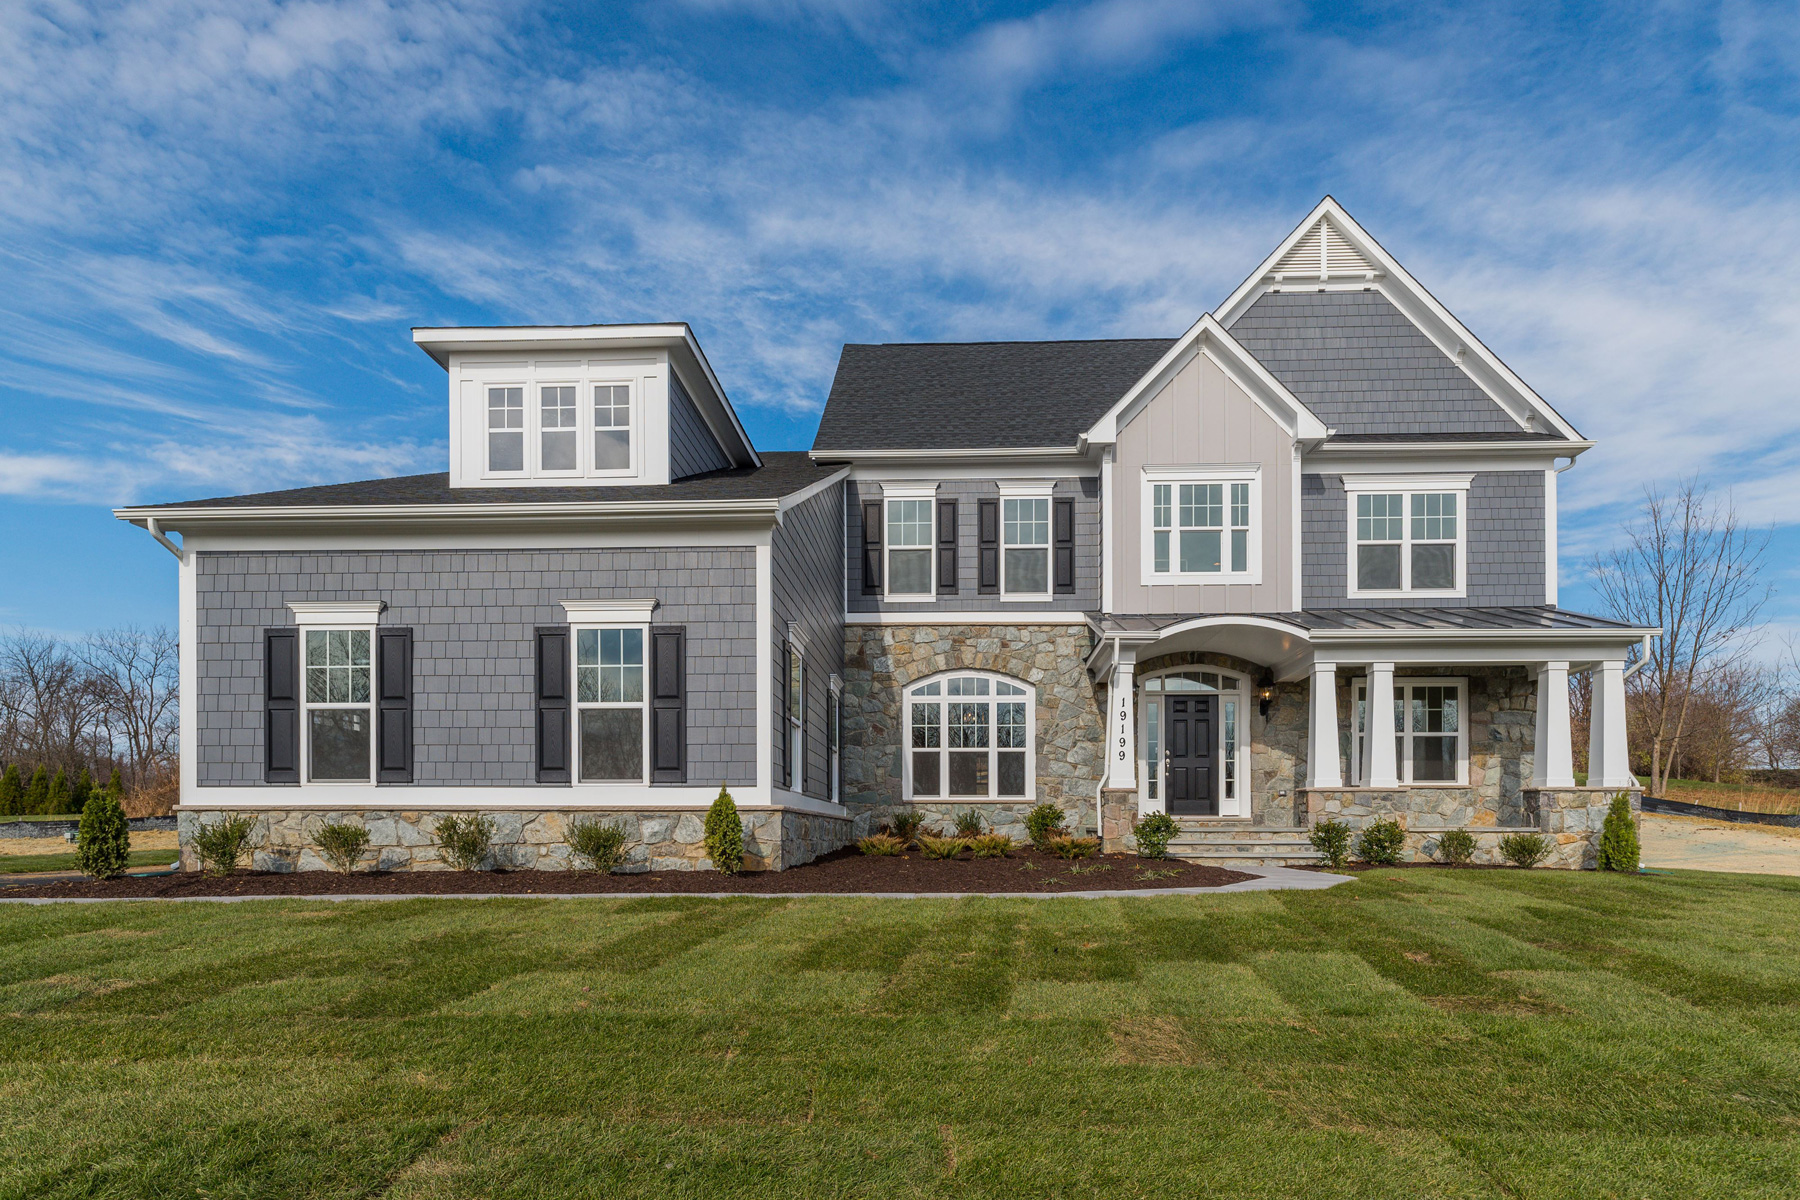 Exterior, Finished Custom Home, Edgemoor, Purcellville, Craftmark Homes